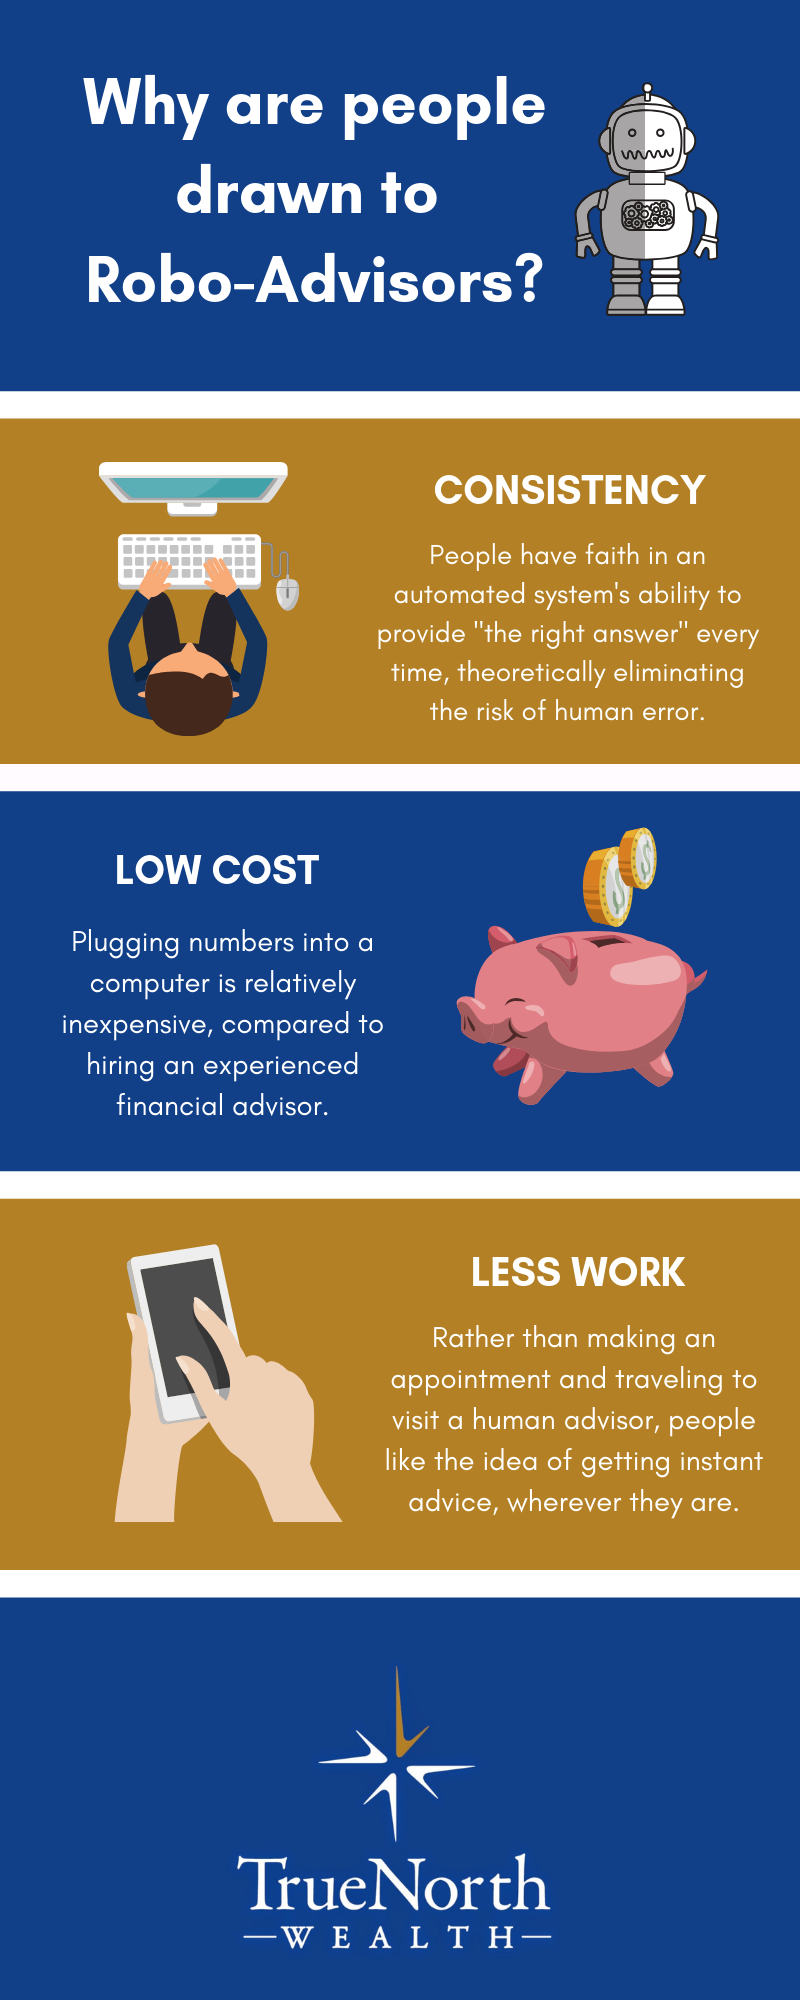 True North Wealth 2019 Infographic.png